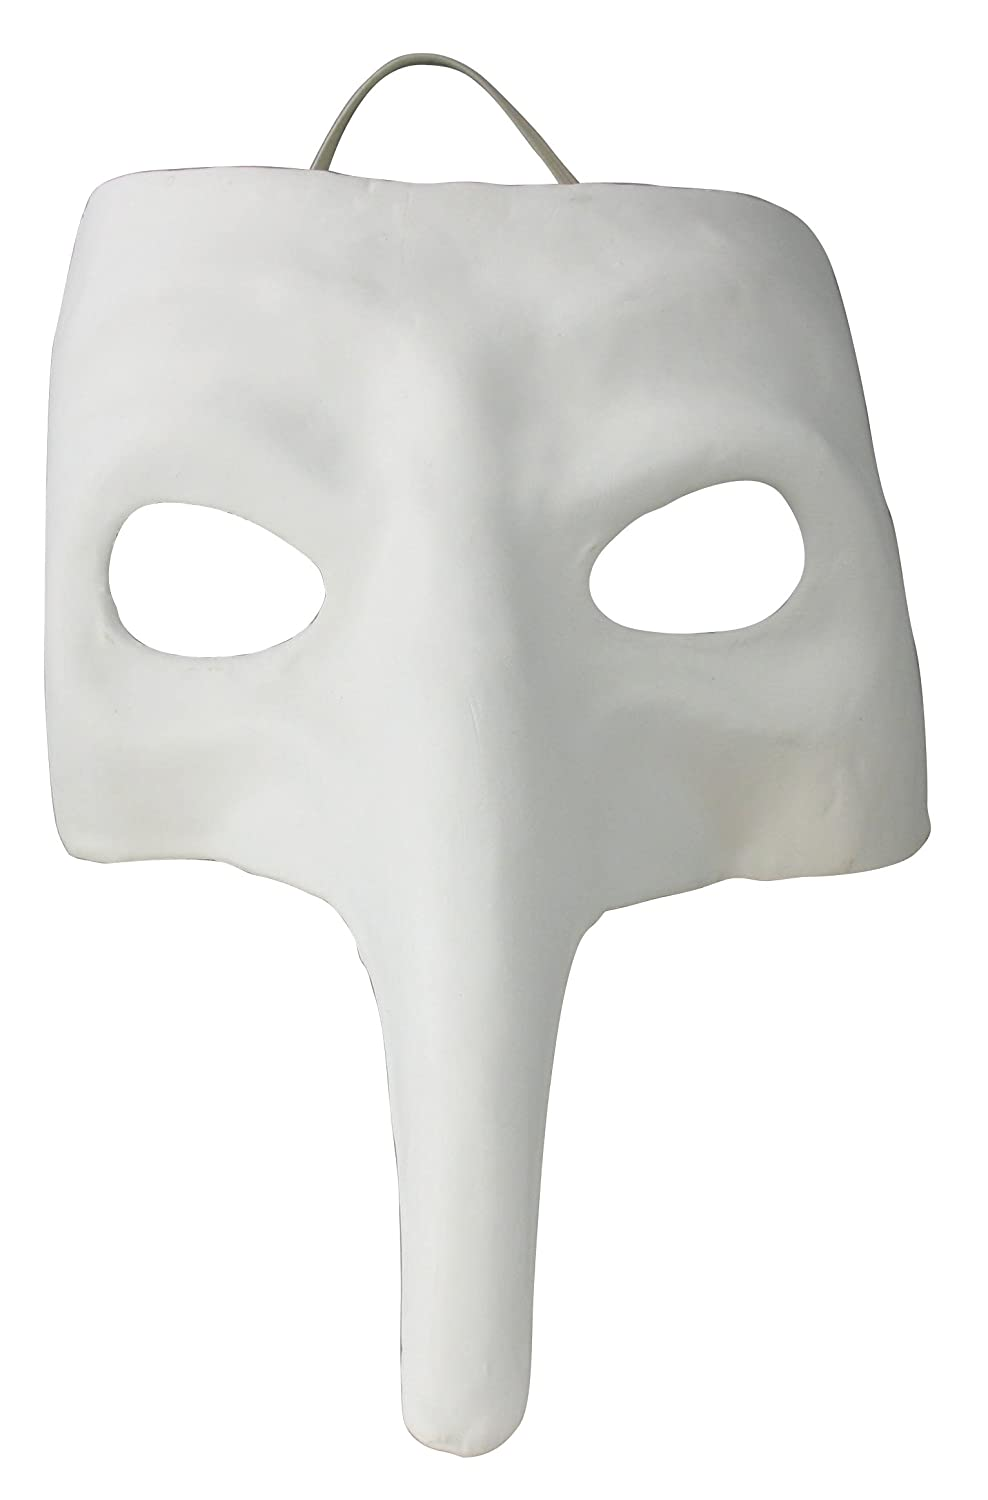 Artemio Masque de Venise Long Nez Adulte